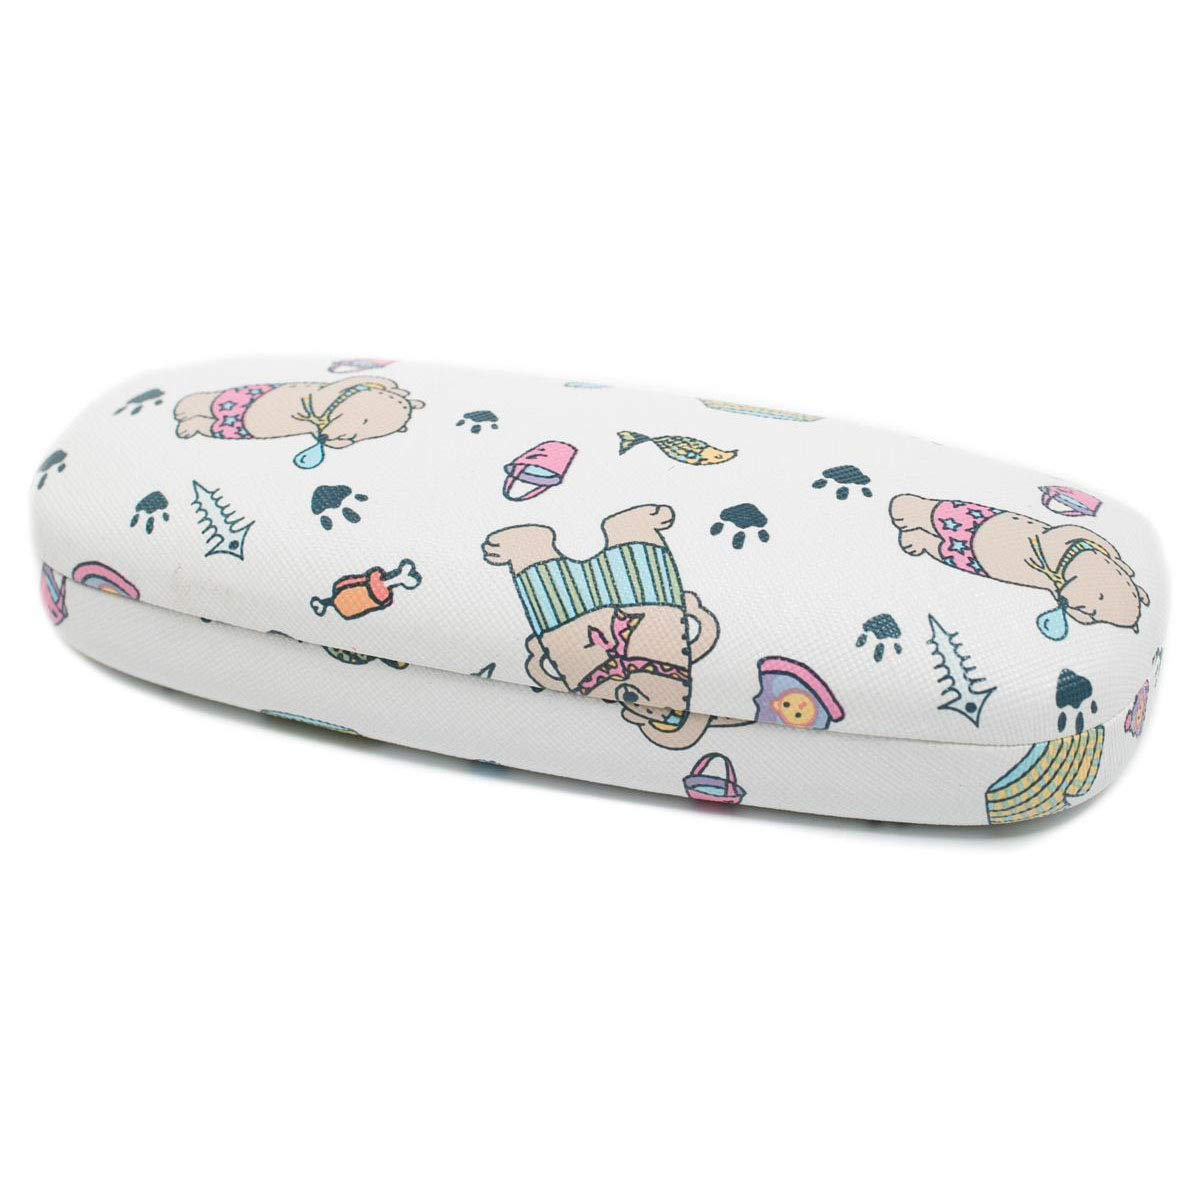 Handmade Russian Glasses case for women with a color print, on a solid basis, covered with artificial leather